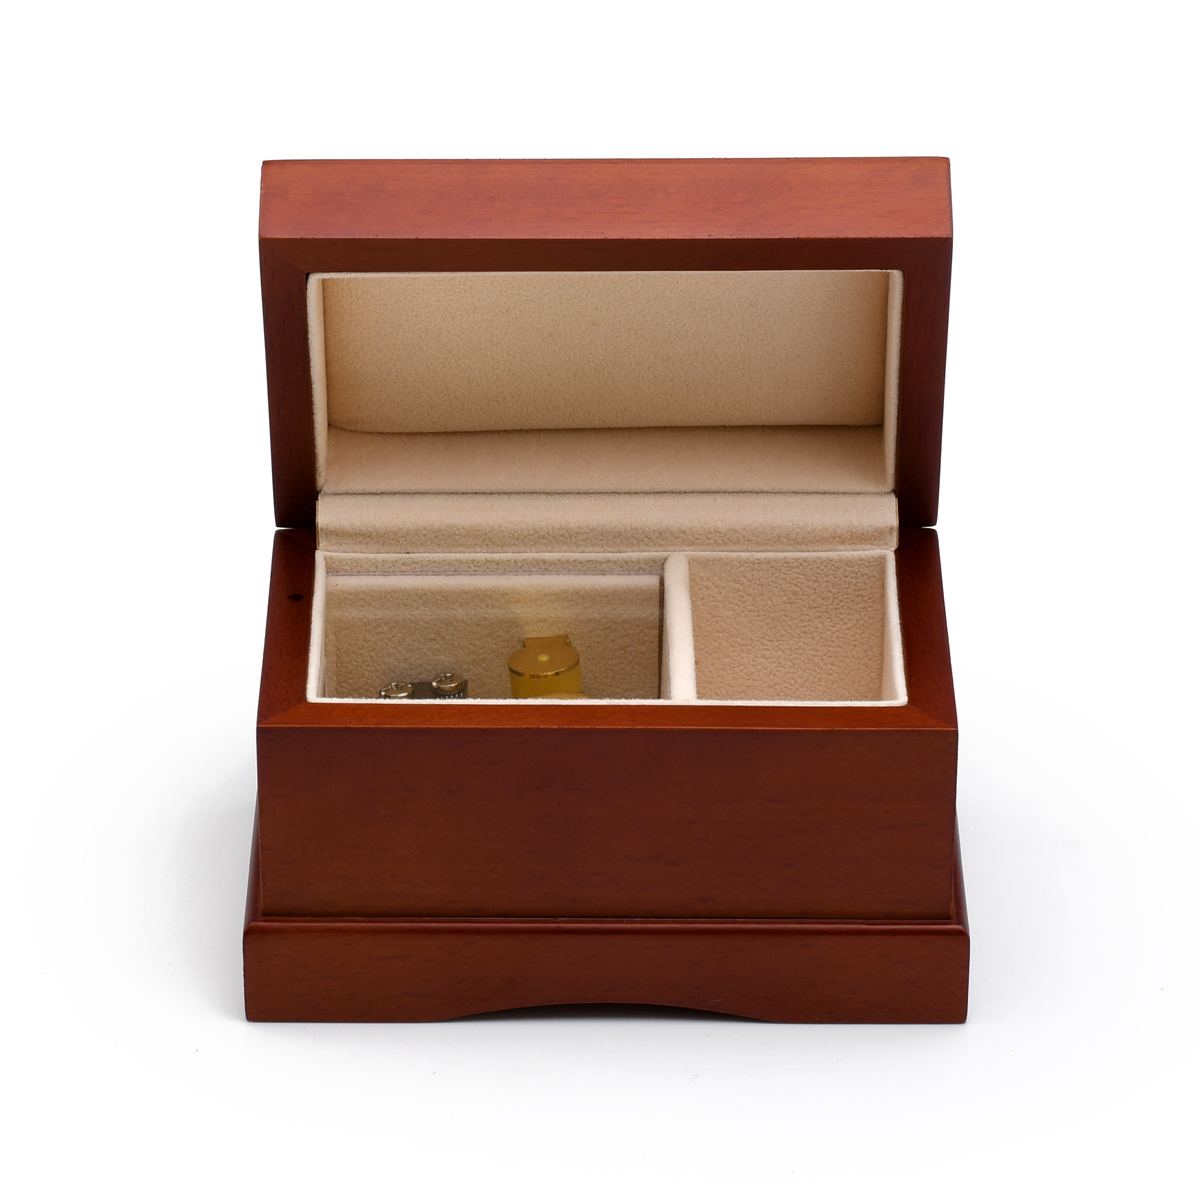 Matte Wood Tone Treasure Chest Simple 18 Note Music Ring Box BLOWOUT